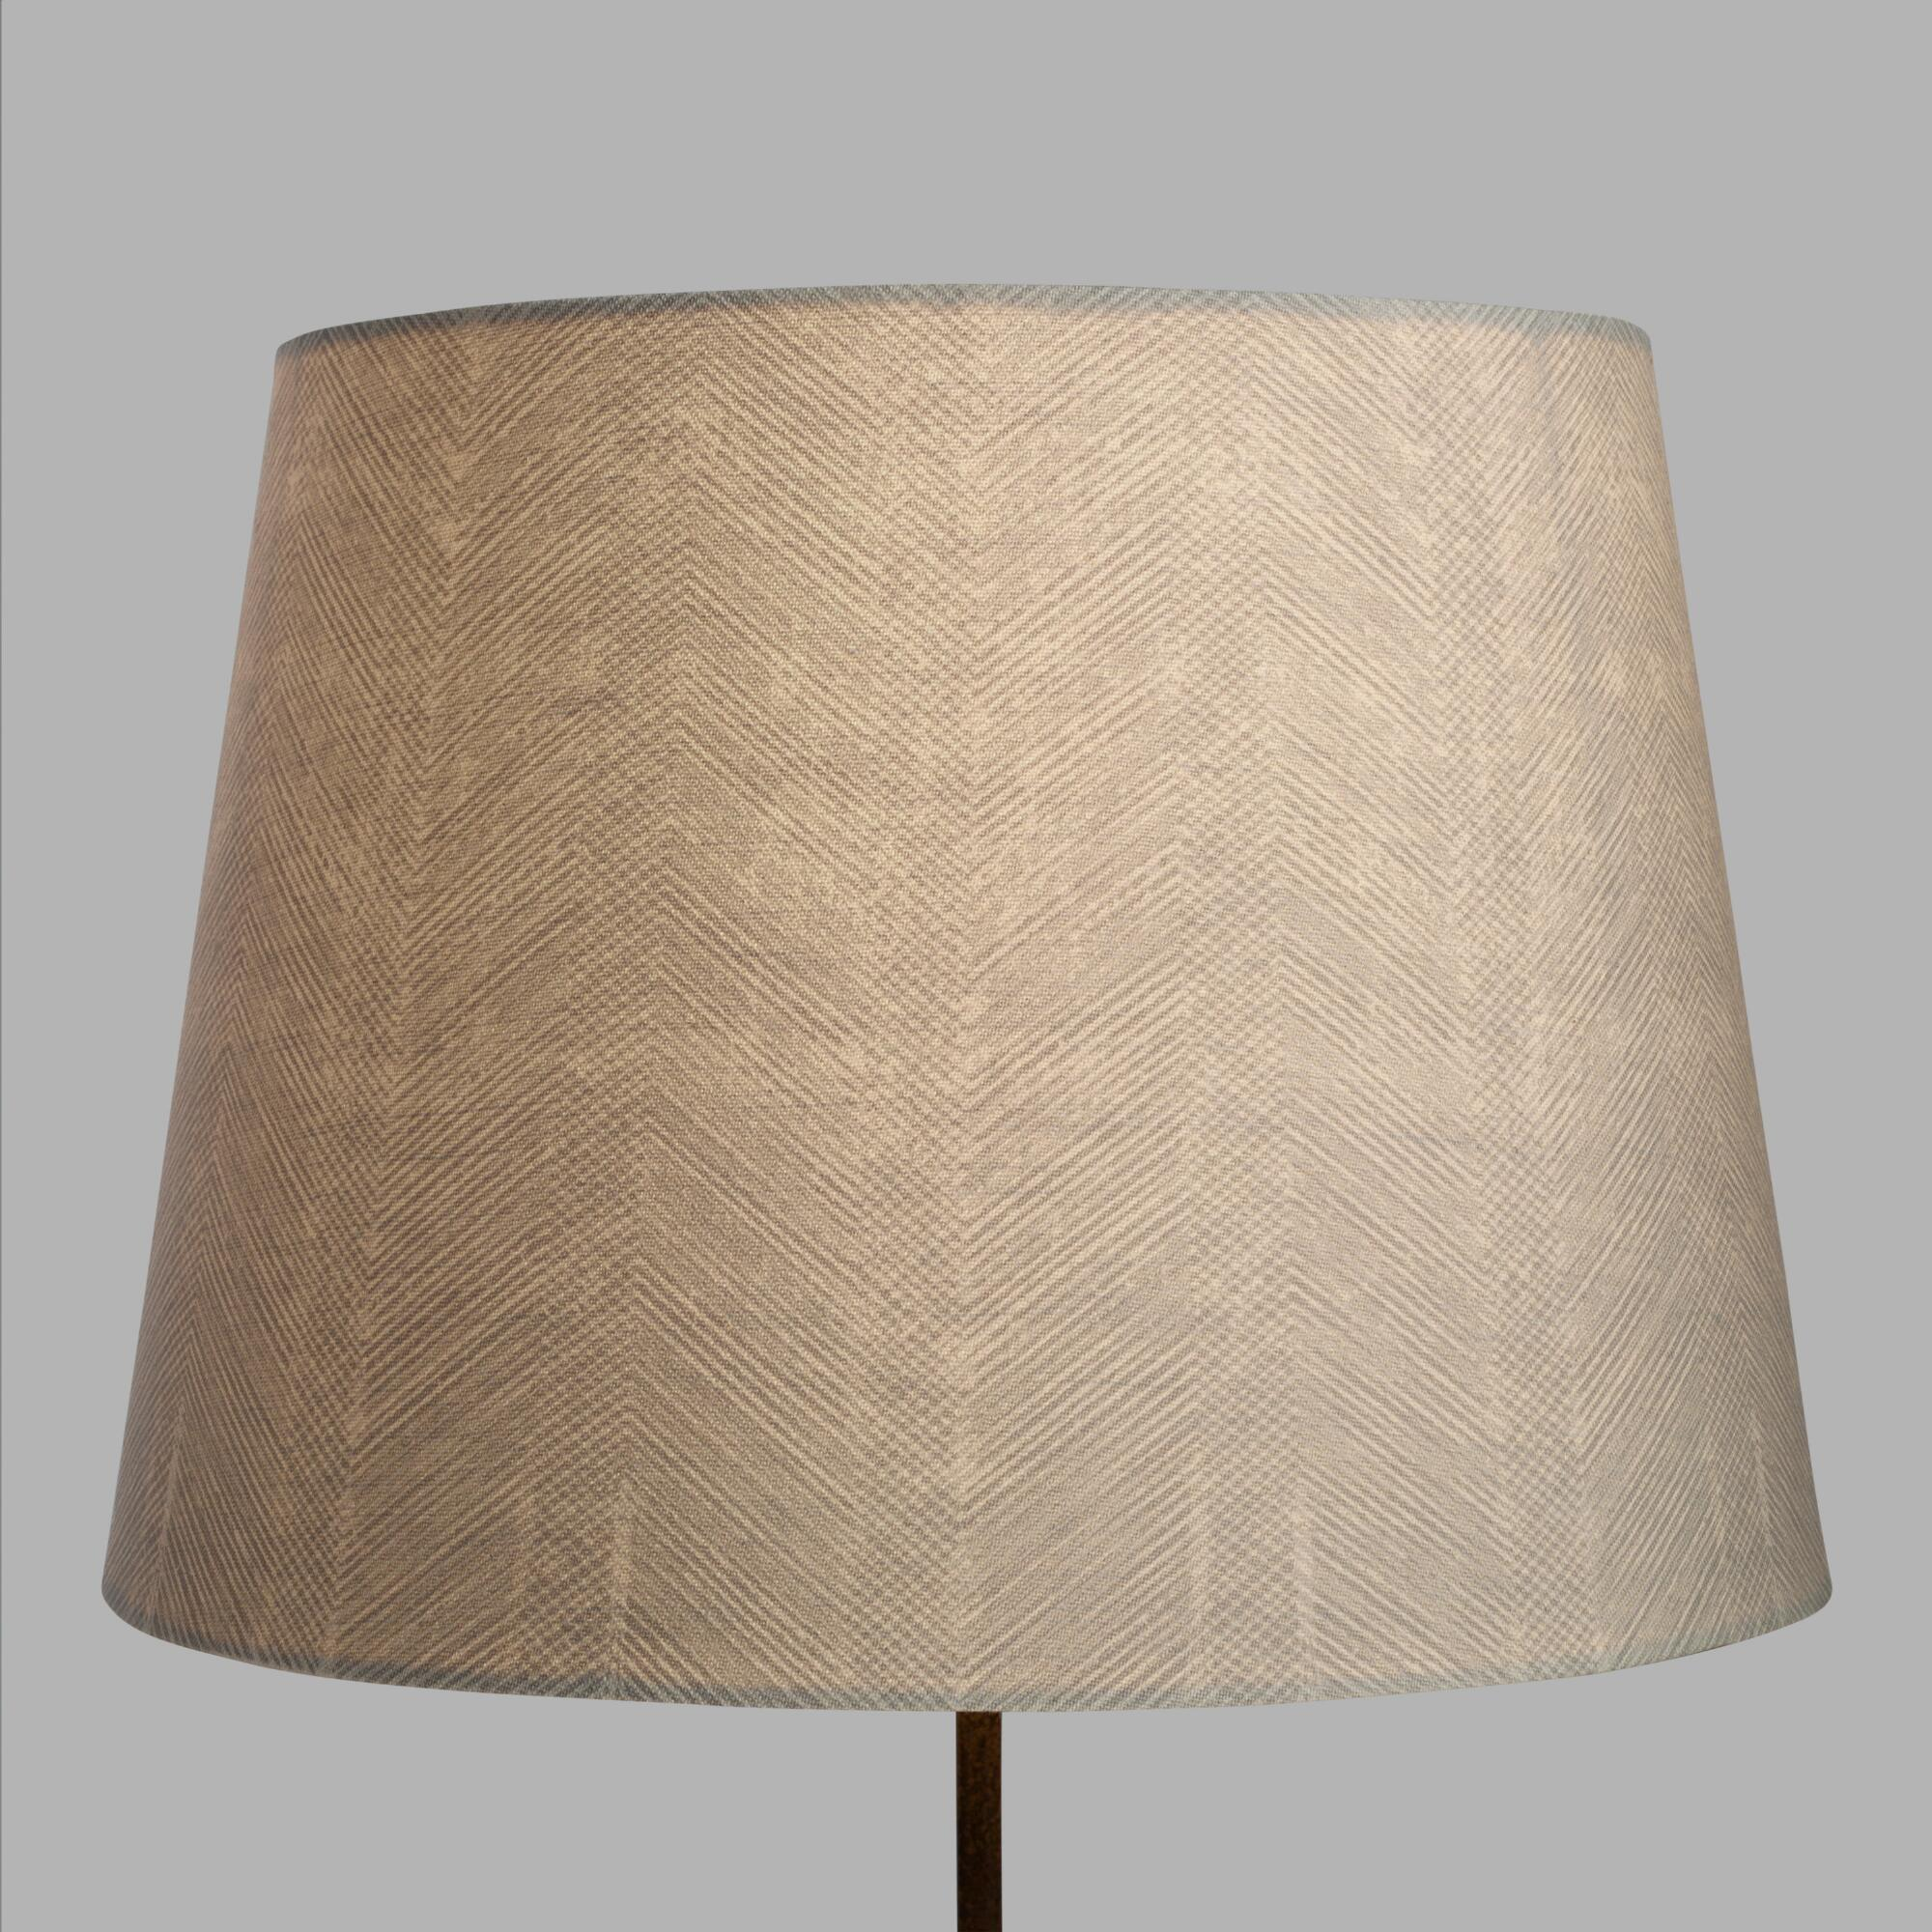 Cost plus world market feathered chevron table lamp shade for Lighting plus online